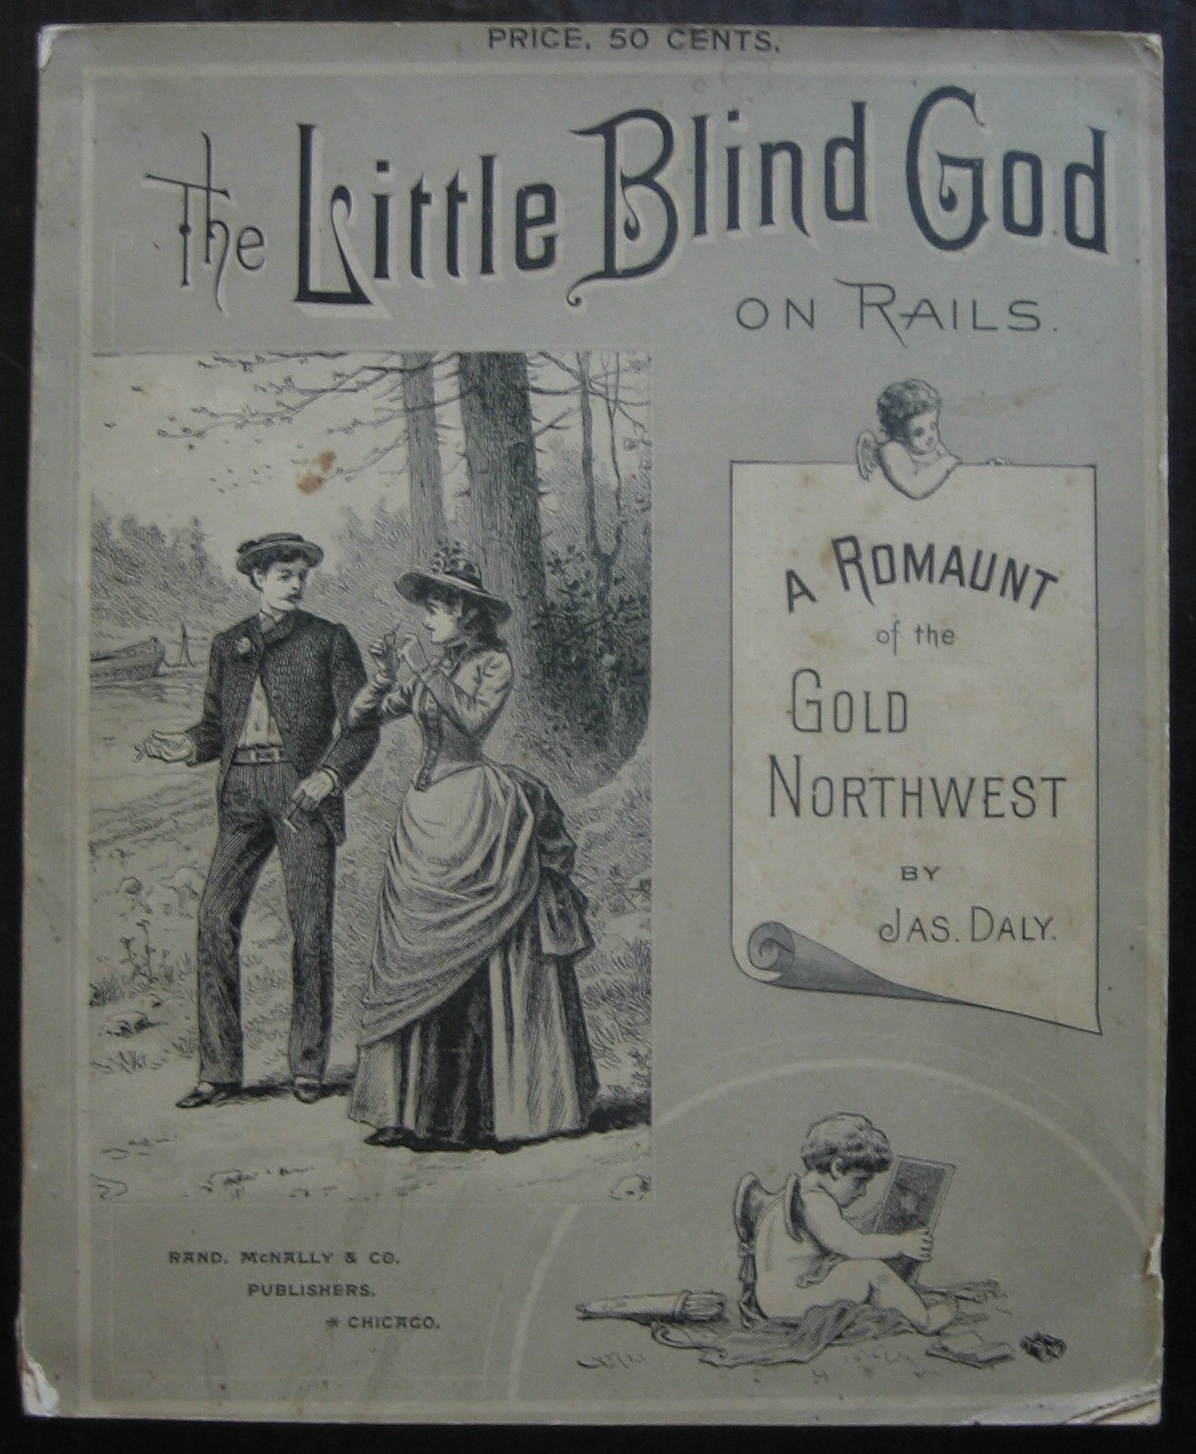 James Daly, The little blind god on rails: a romaunt of the Gold Northwest. Chicago: Rand, McNally & Co., 1888. (PS1499 .D87 L5 1888)